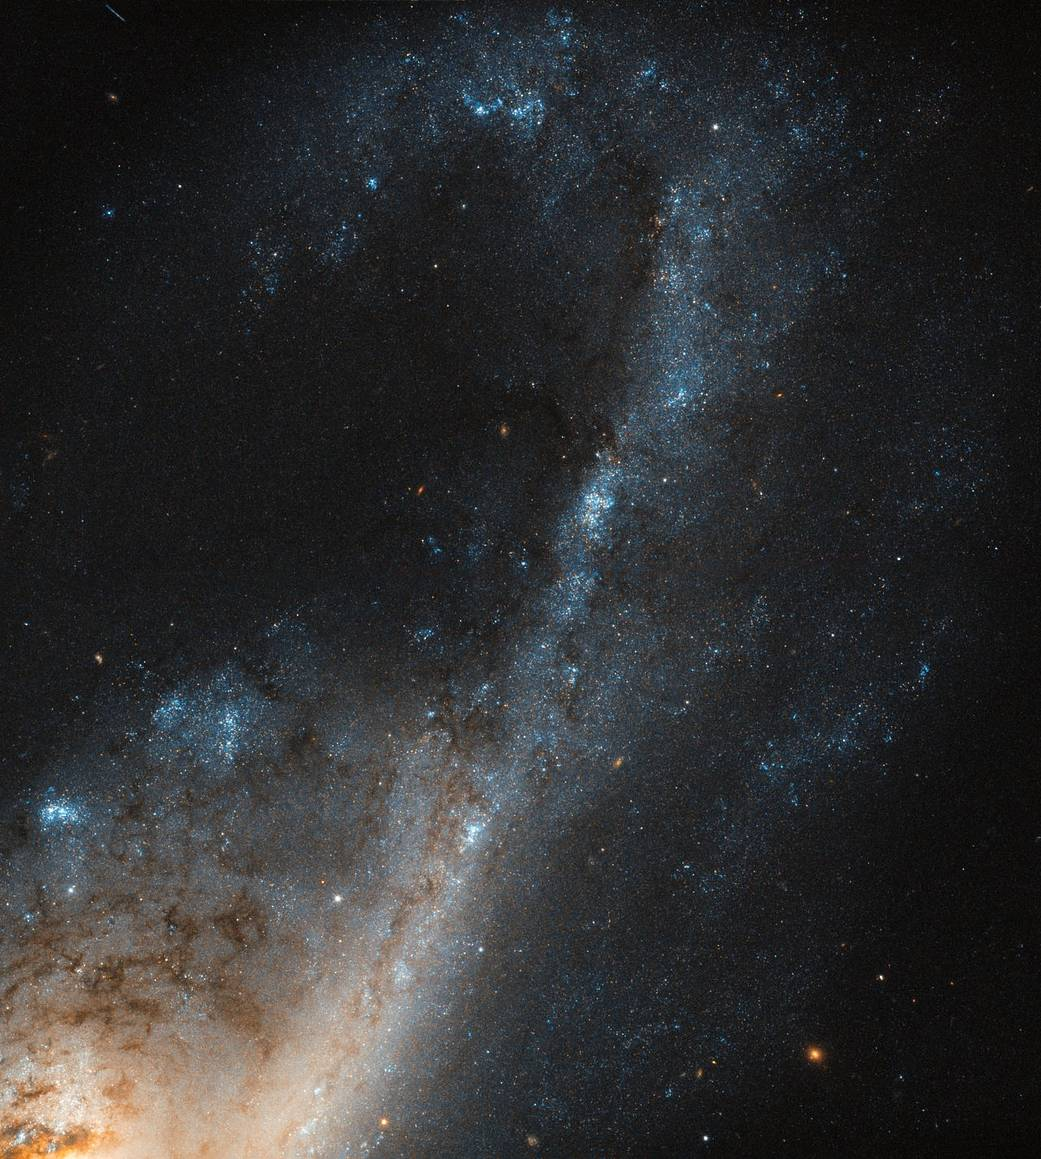 NASA Image of the Day | Hubble sees starbursts in Virgo